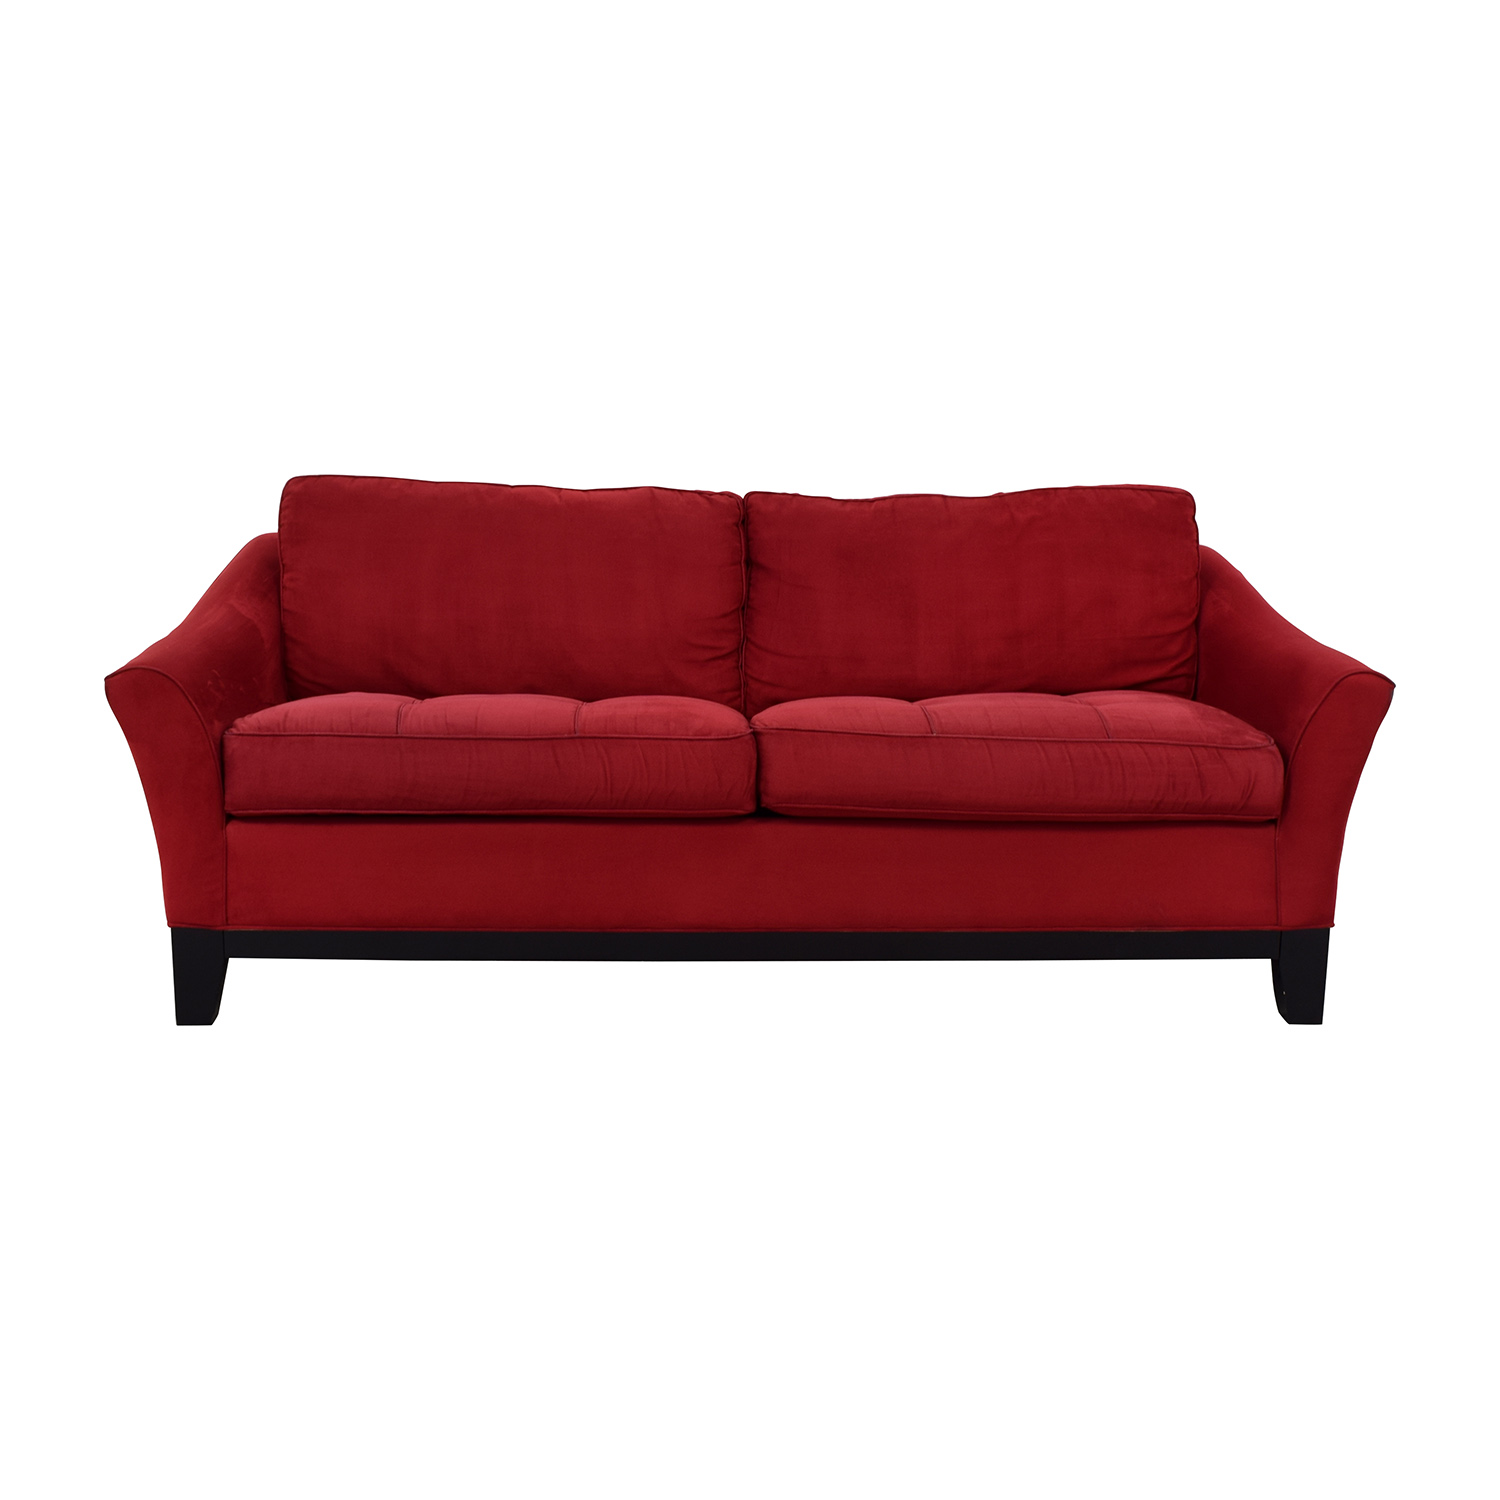 Raymour & Flanigan Red Sleeper Sofa / Sofas